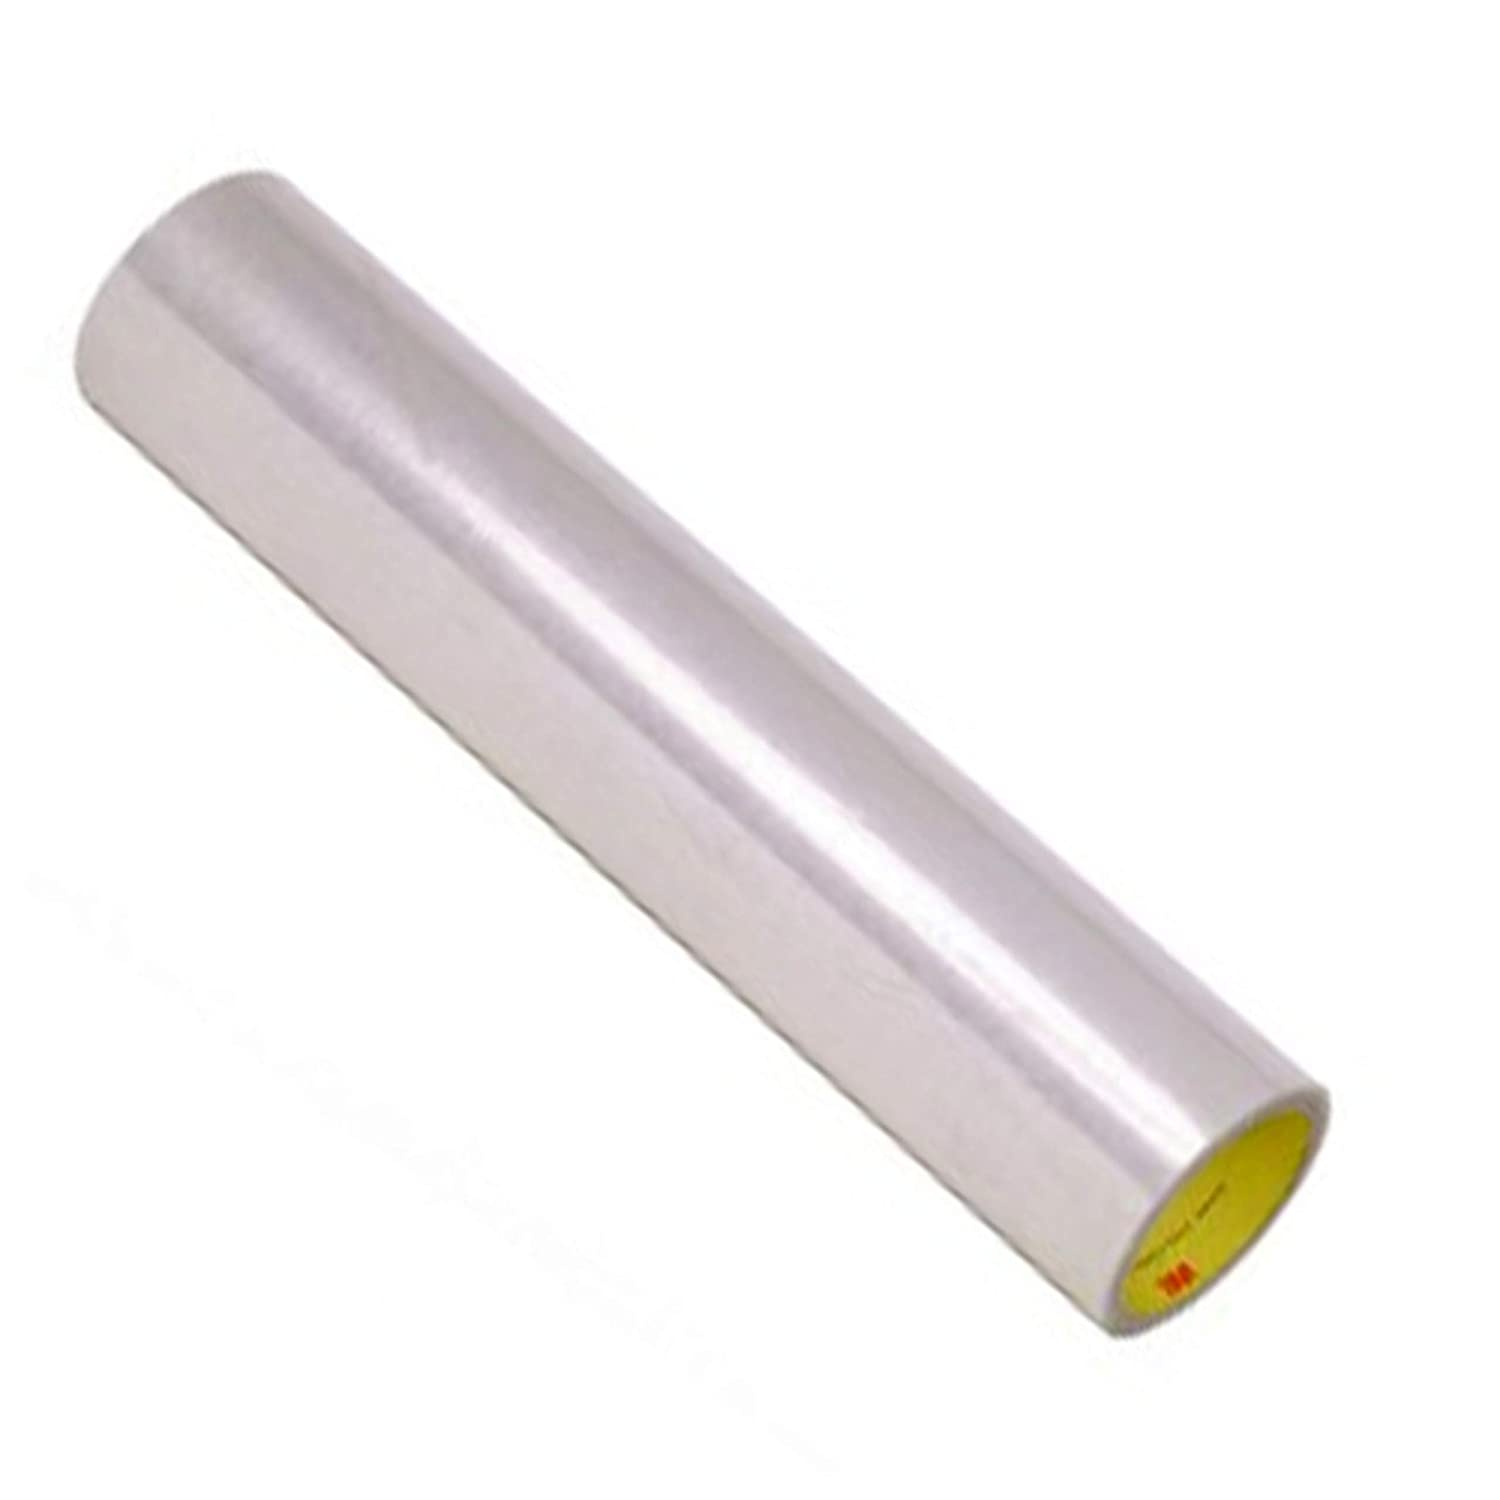 12.75 x 36 Yards CS Hyde 15-2HD PTFE Film with Silicone Adhesive